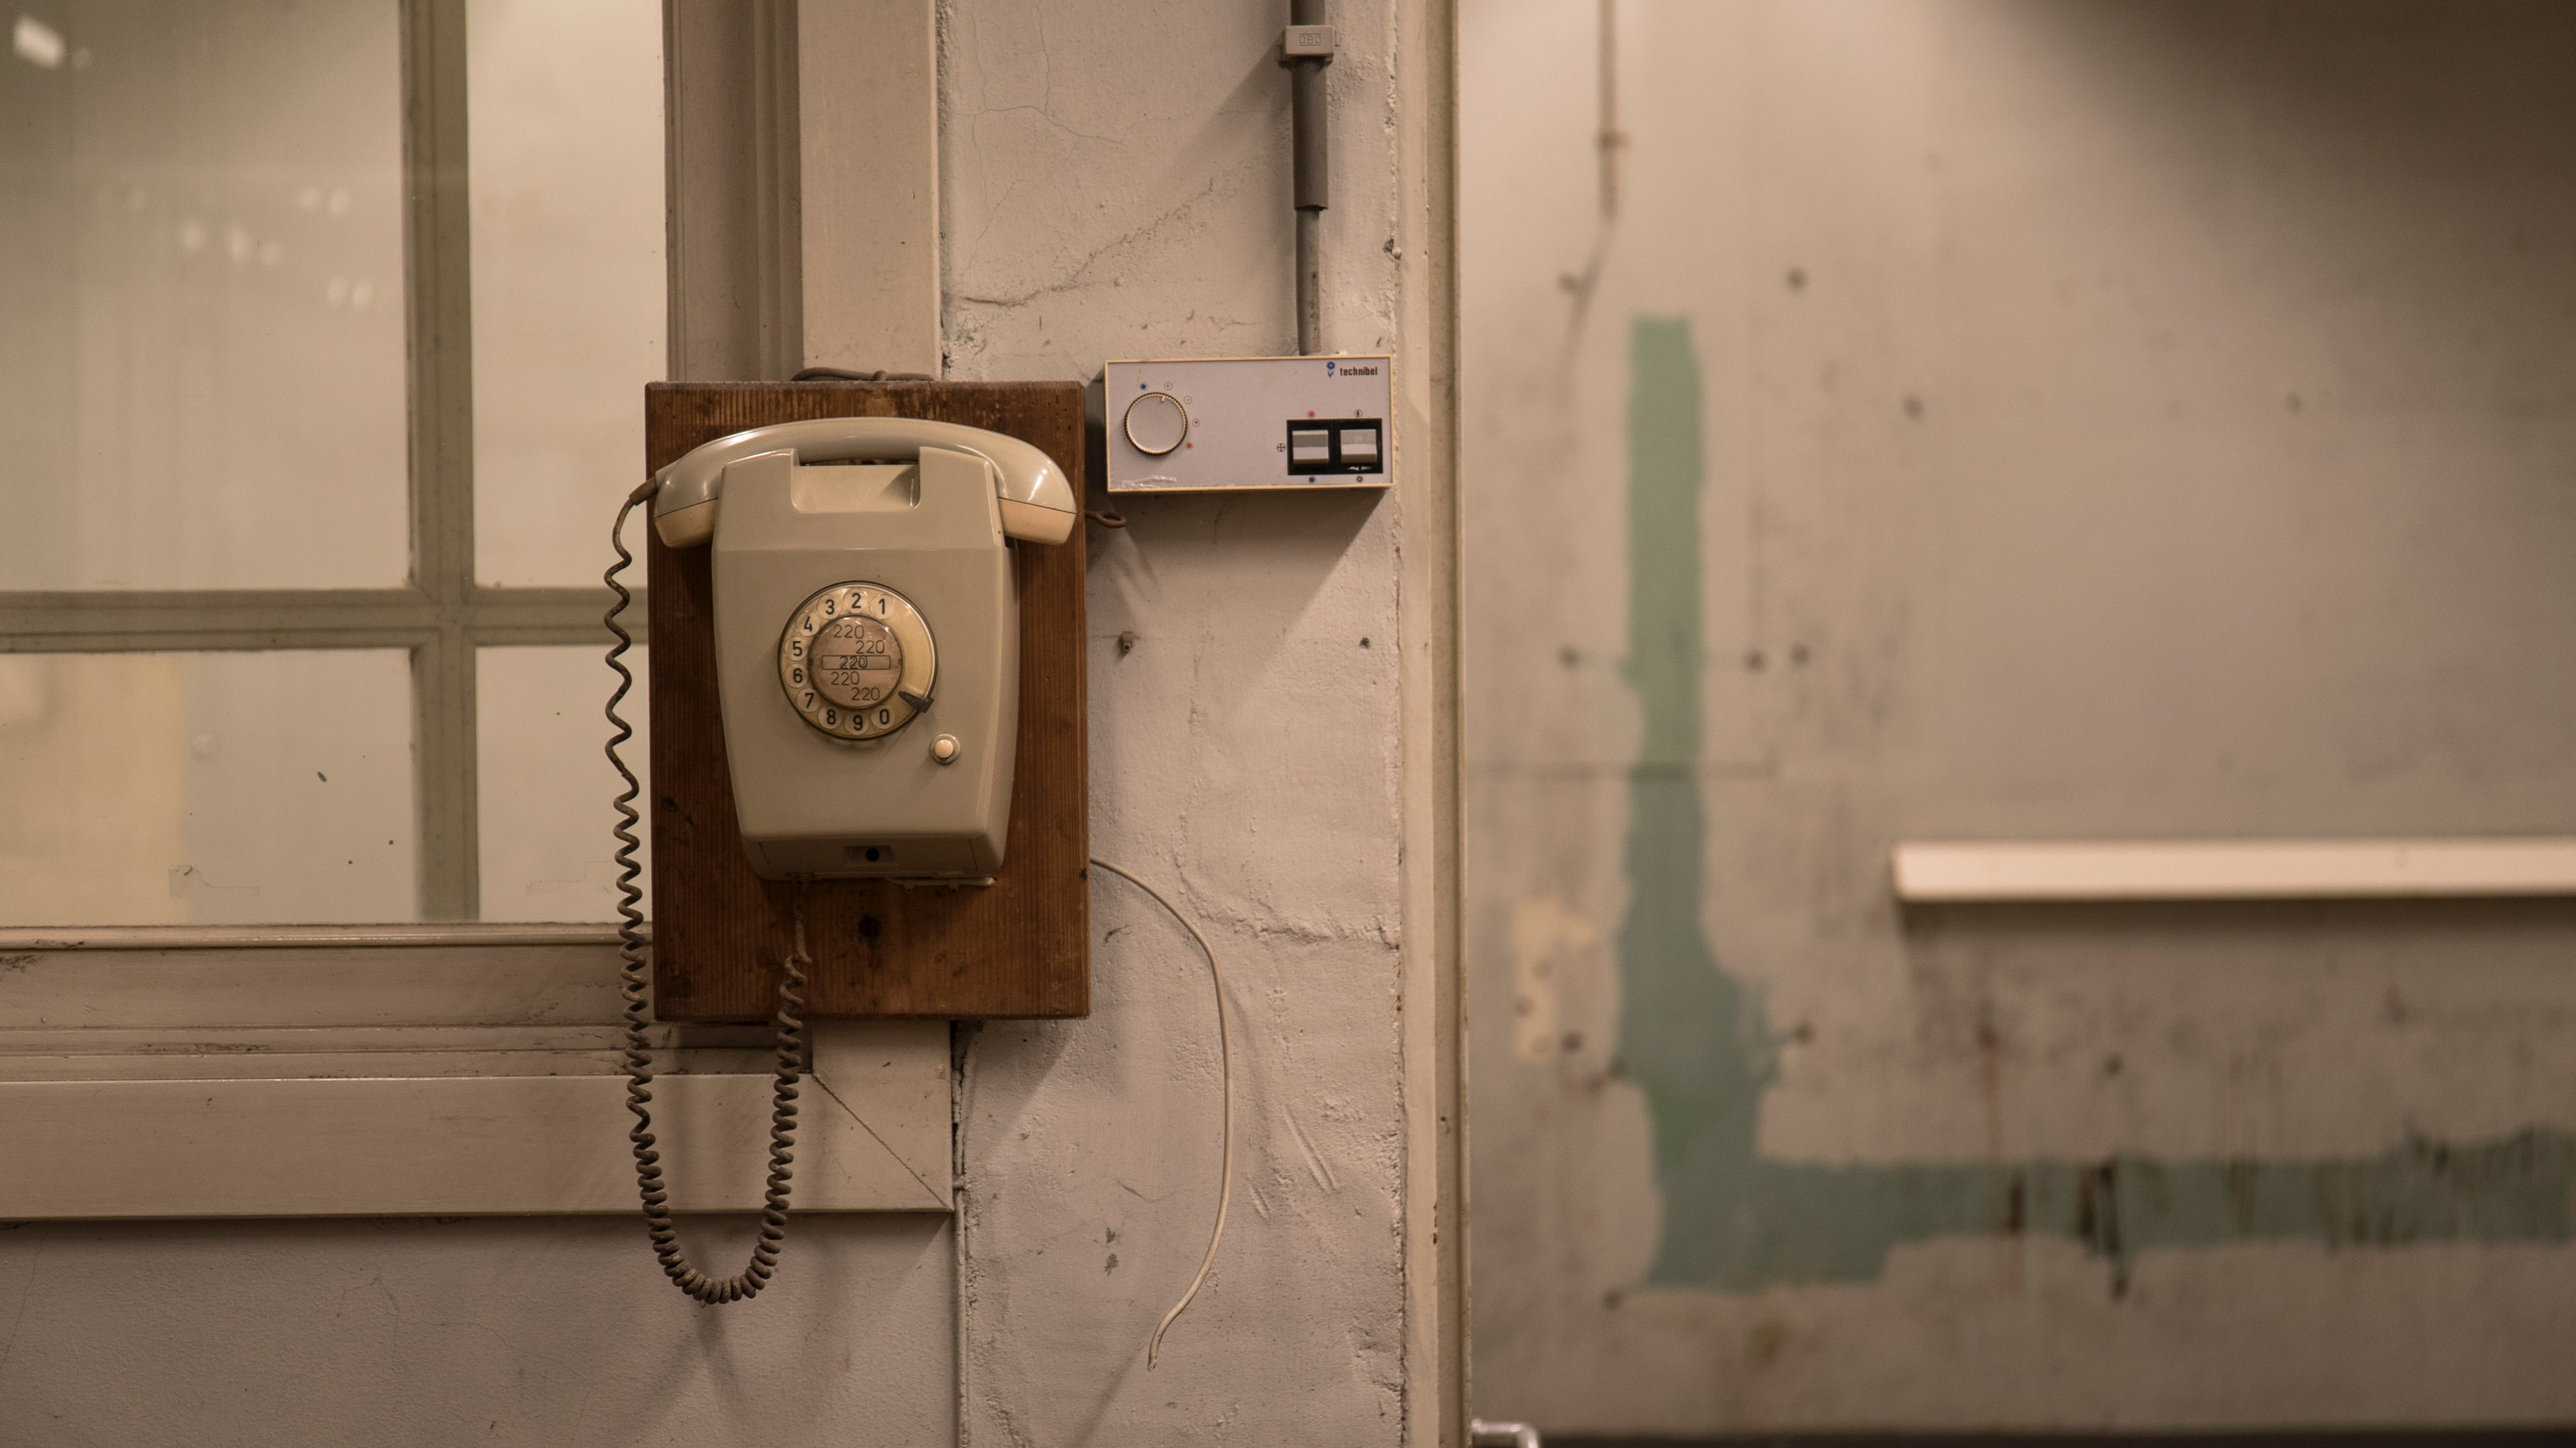 80s telephone on a wall contact us